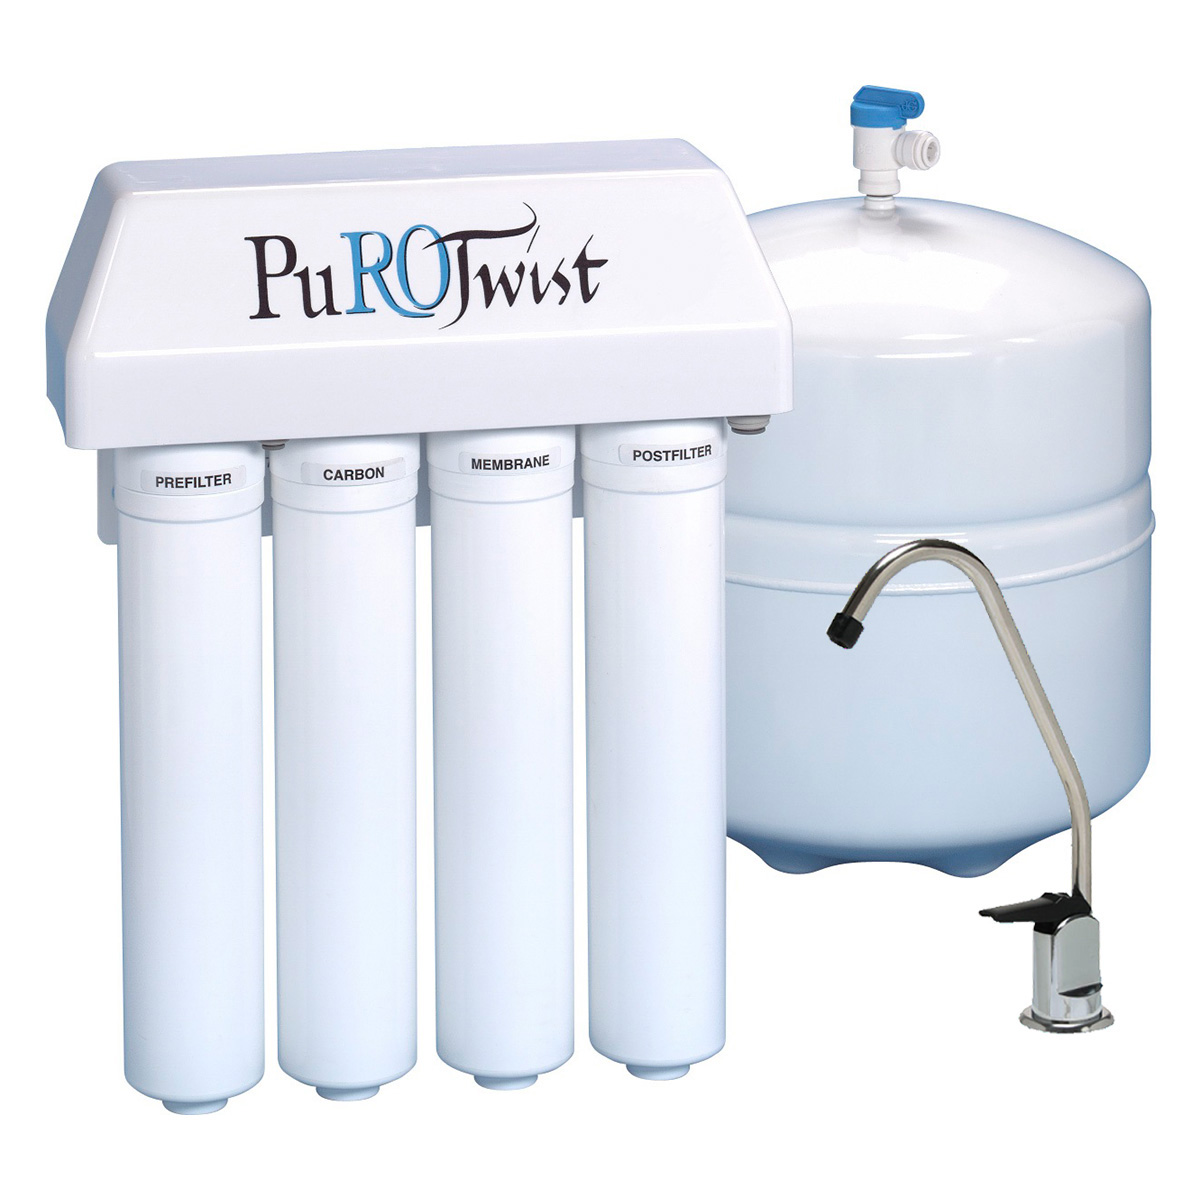 Can I Install A Reverse Osmosis Water System Myself